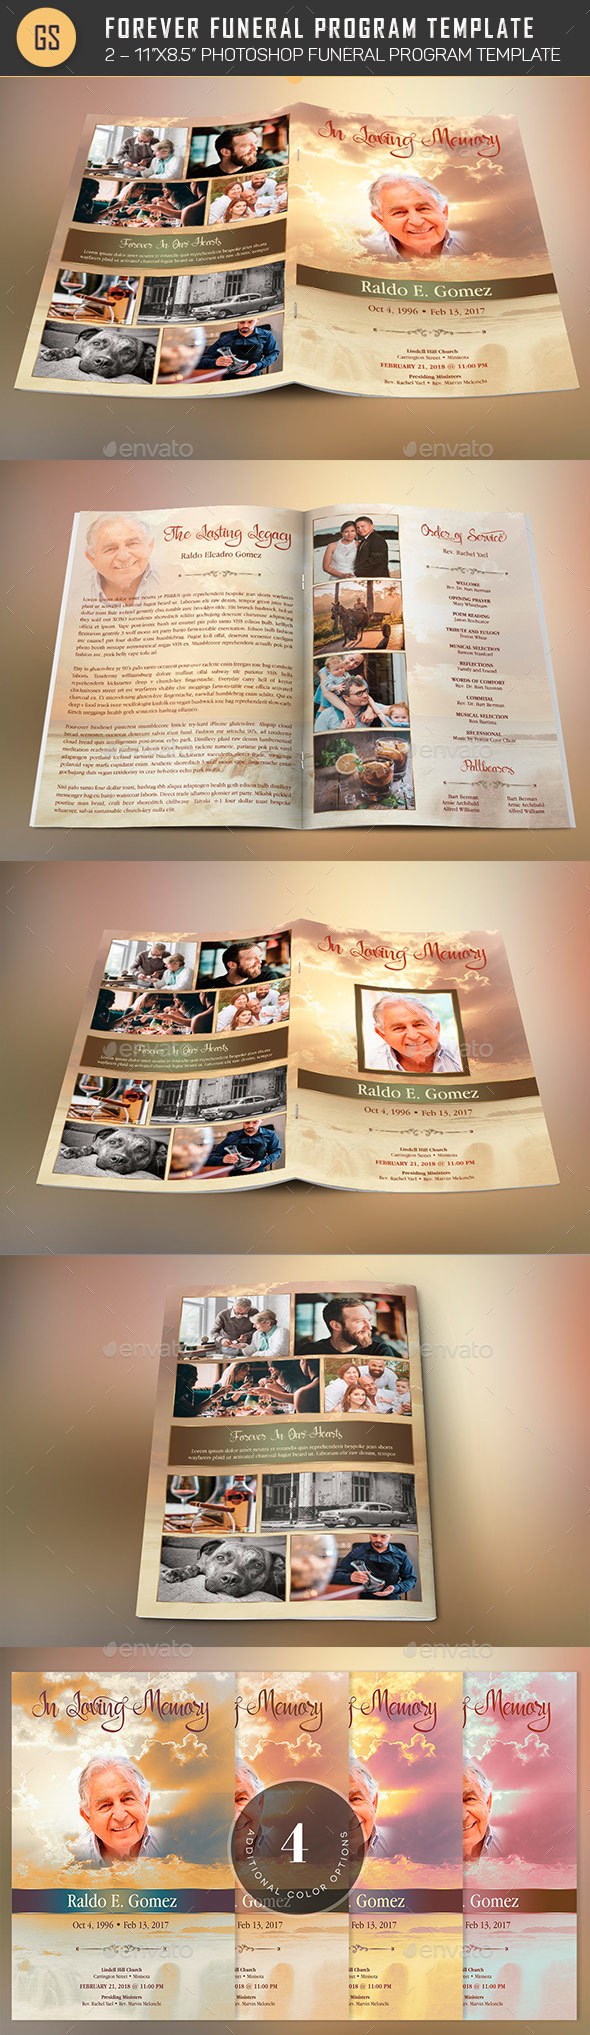 GraphicRiver Forever Funeral Program Template 21054997